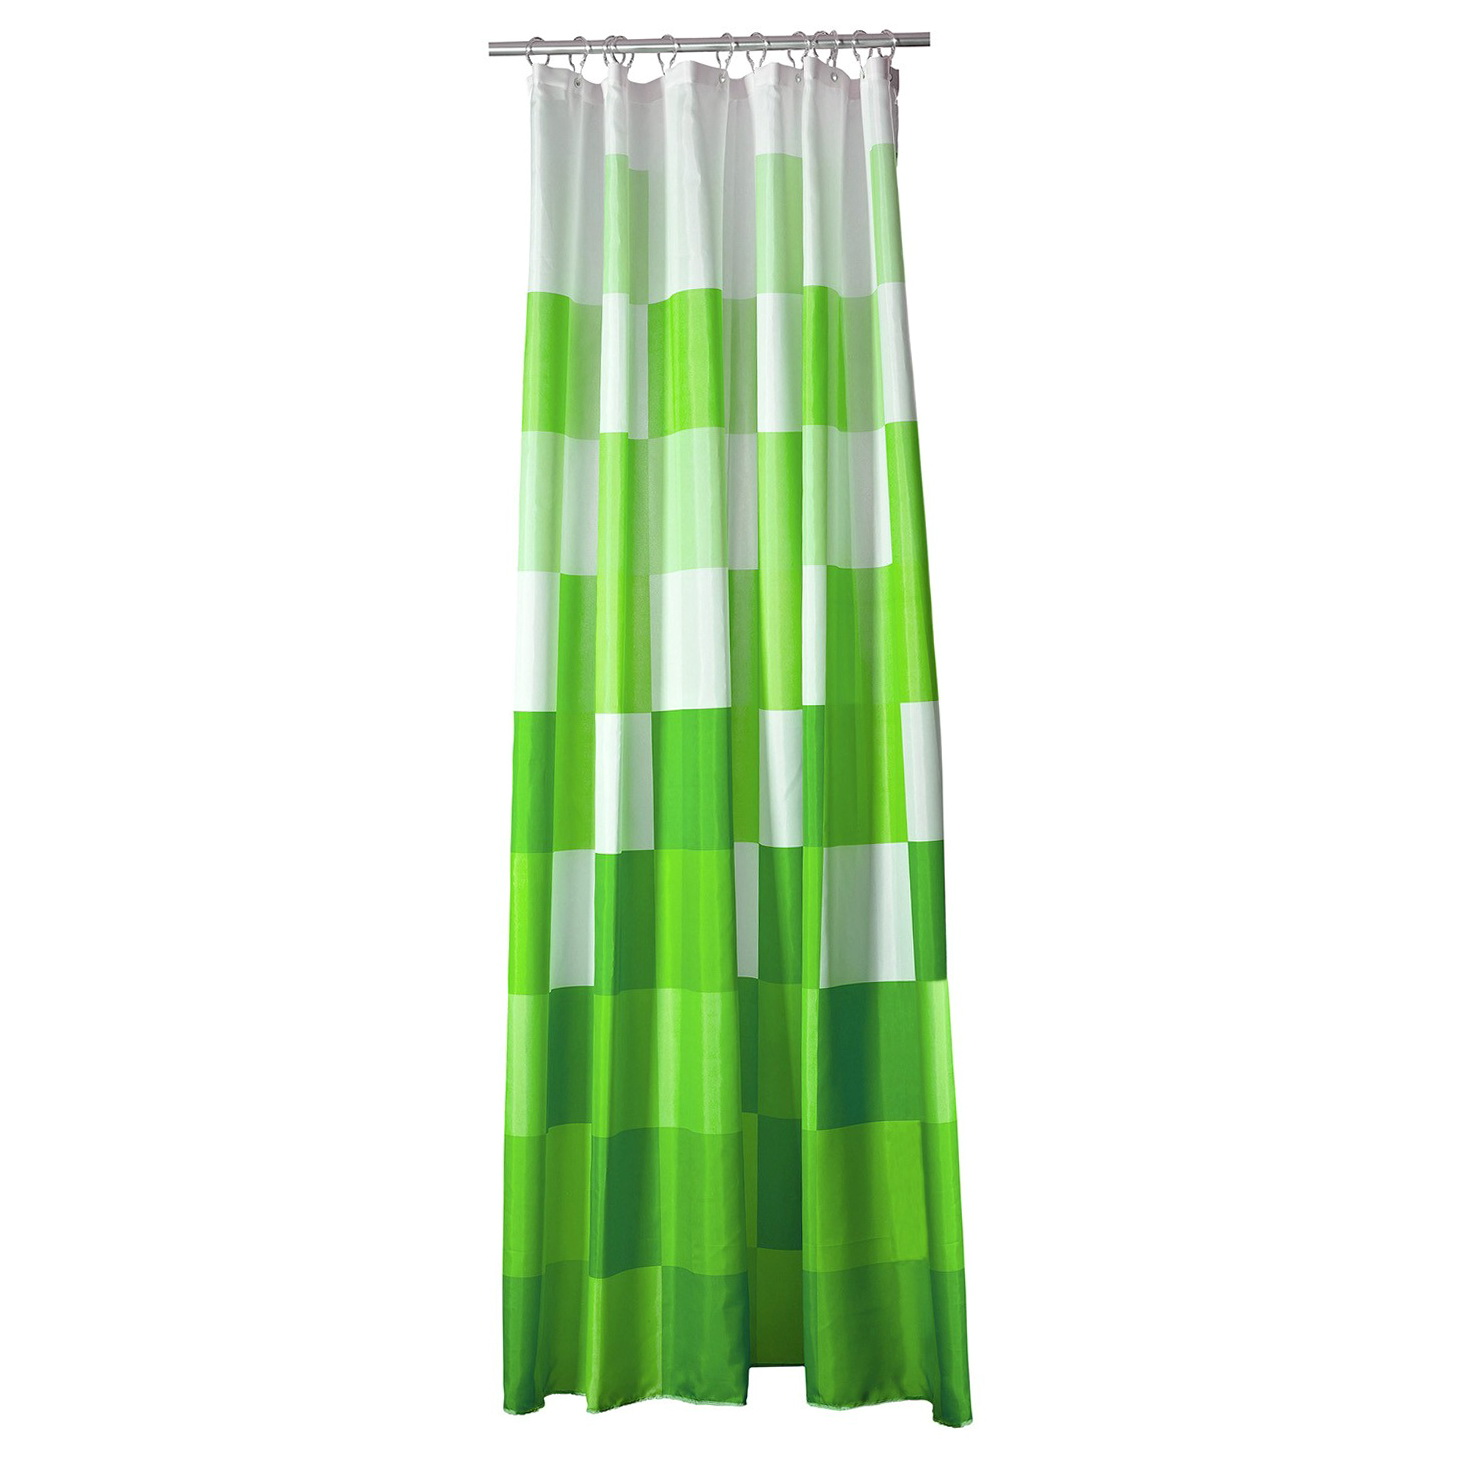 Bright Green Curtains In Ikea Catalogue 2010 Home Design